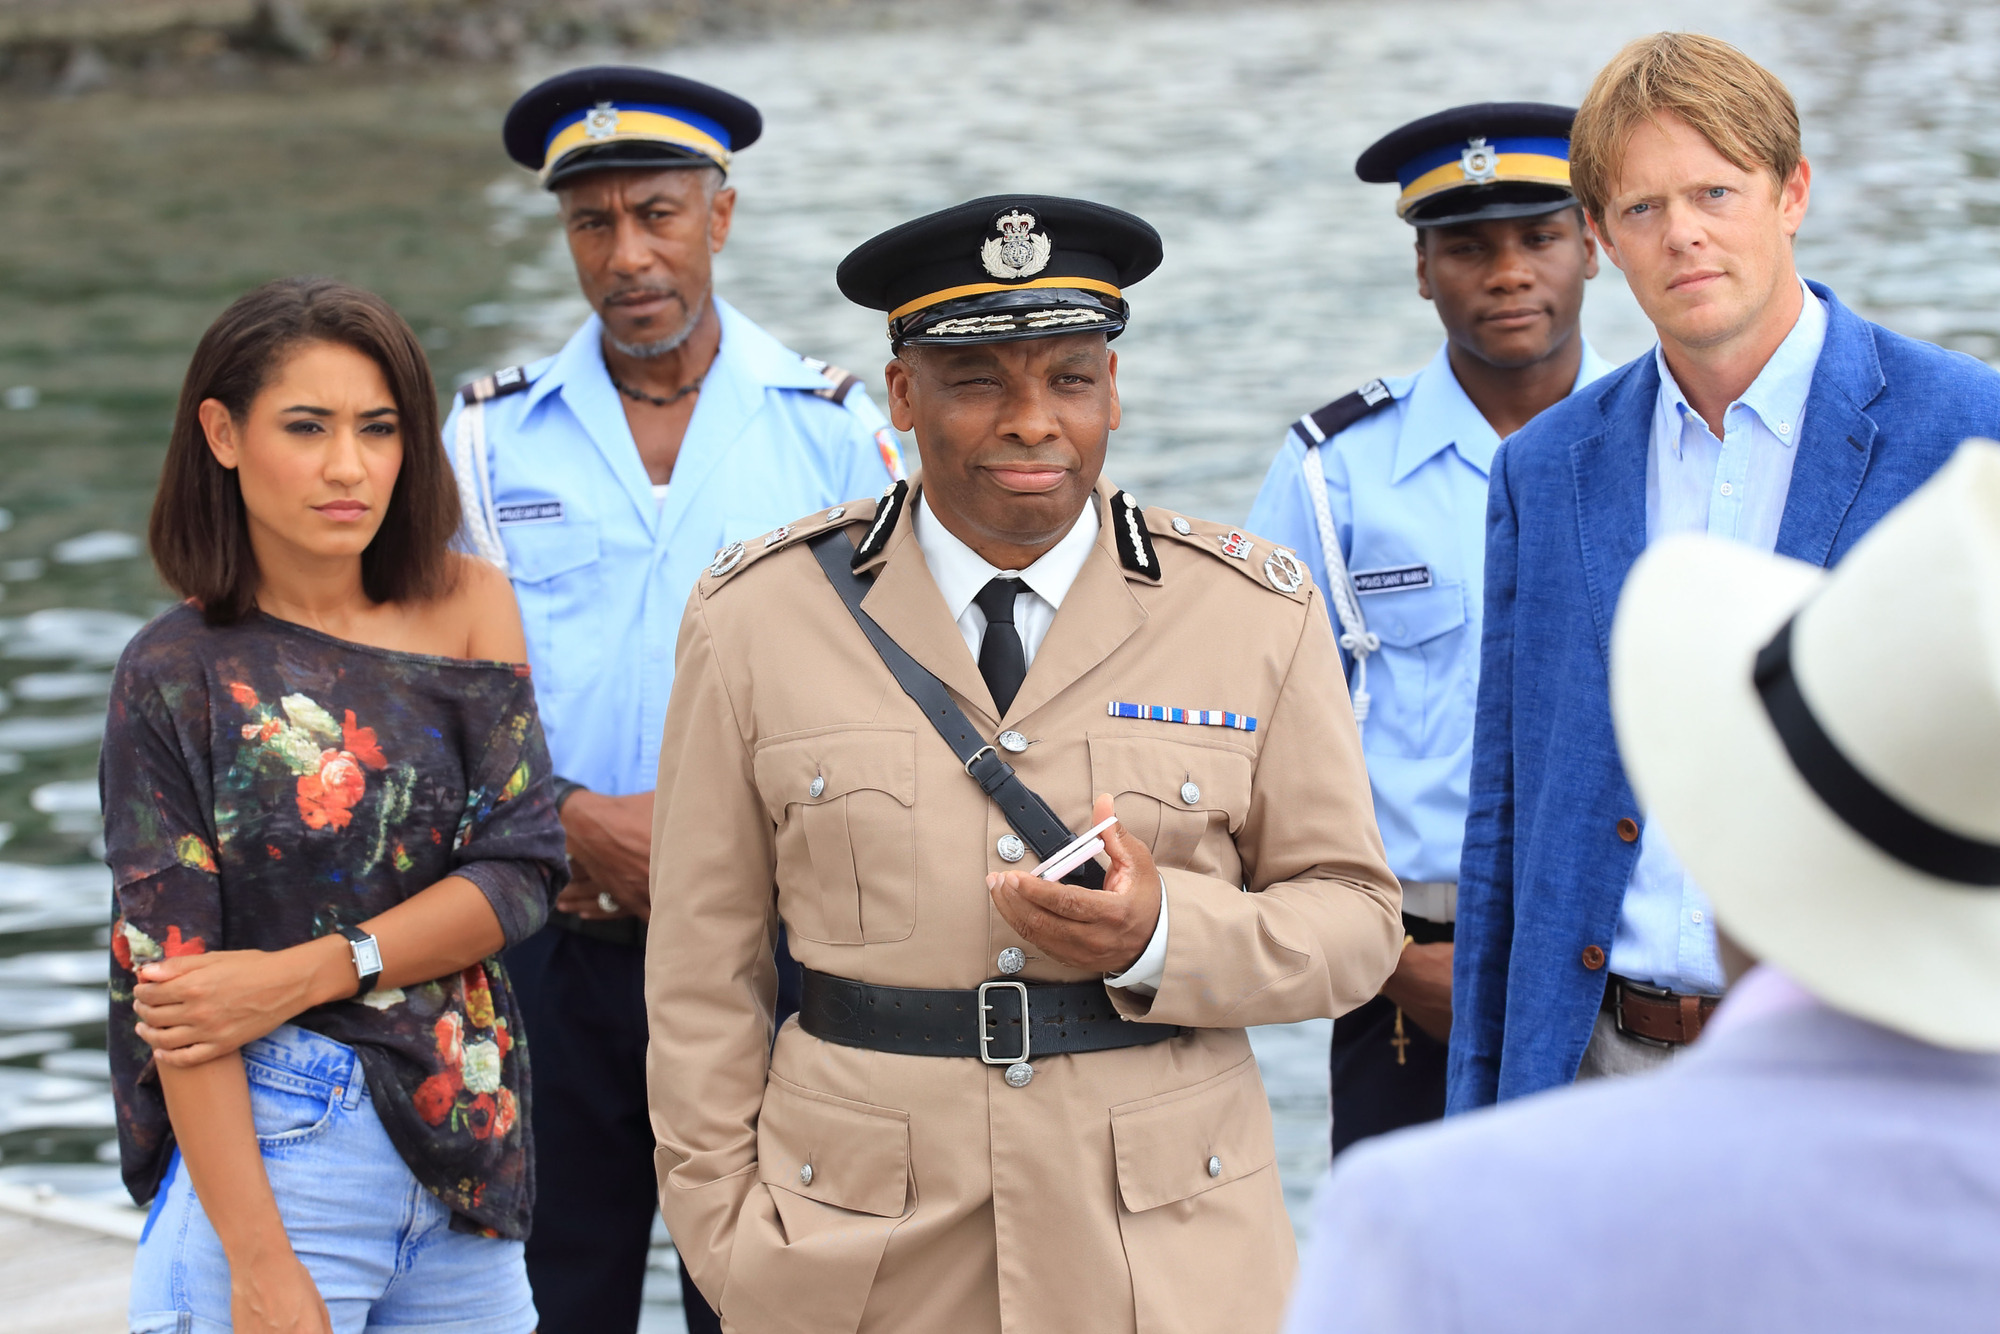 death in paradise review – The Killing Times